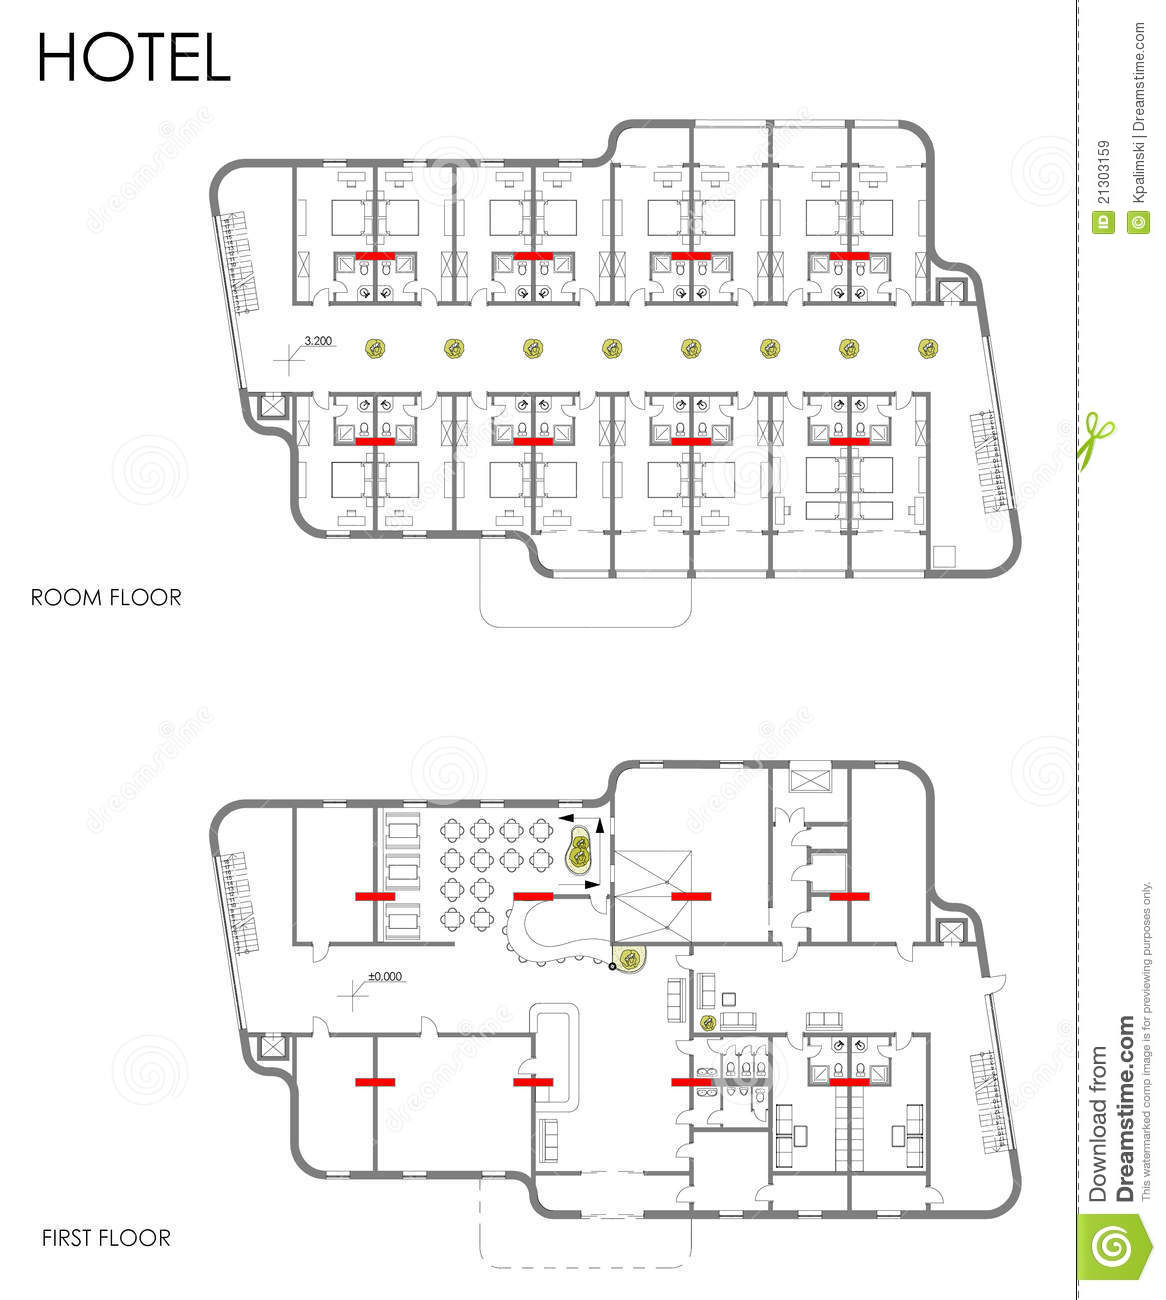 Tree House Layout At Belize Treehouses moreover Watch also Royalty Free Stock Images Hotel Drawing Plan Image21303159 also 134817257 Shutterstock moreover 40 More 1 Bedroom Home Floor Plans. on bedroom house blueprint